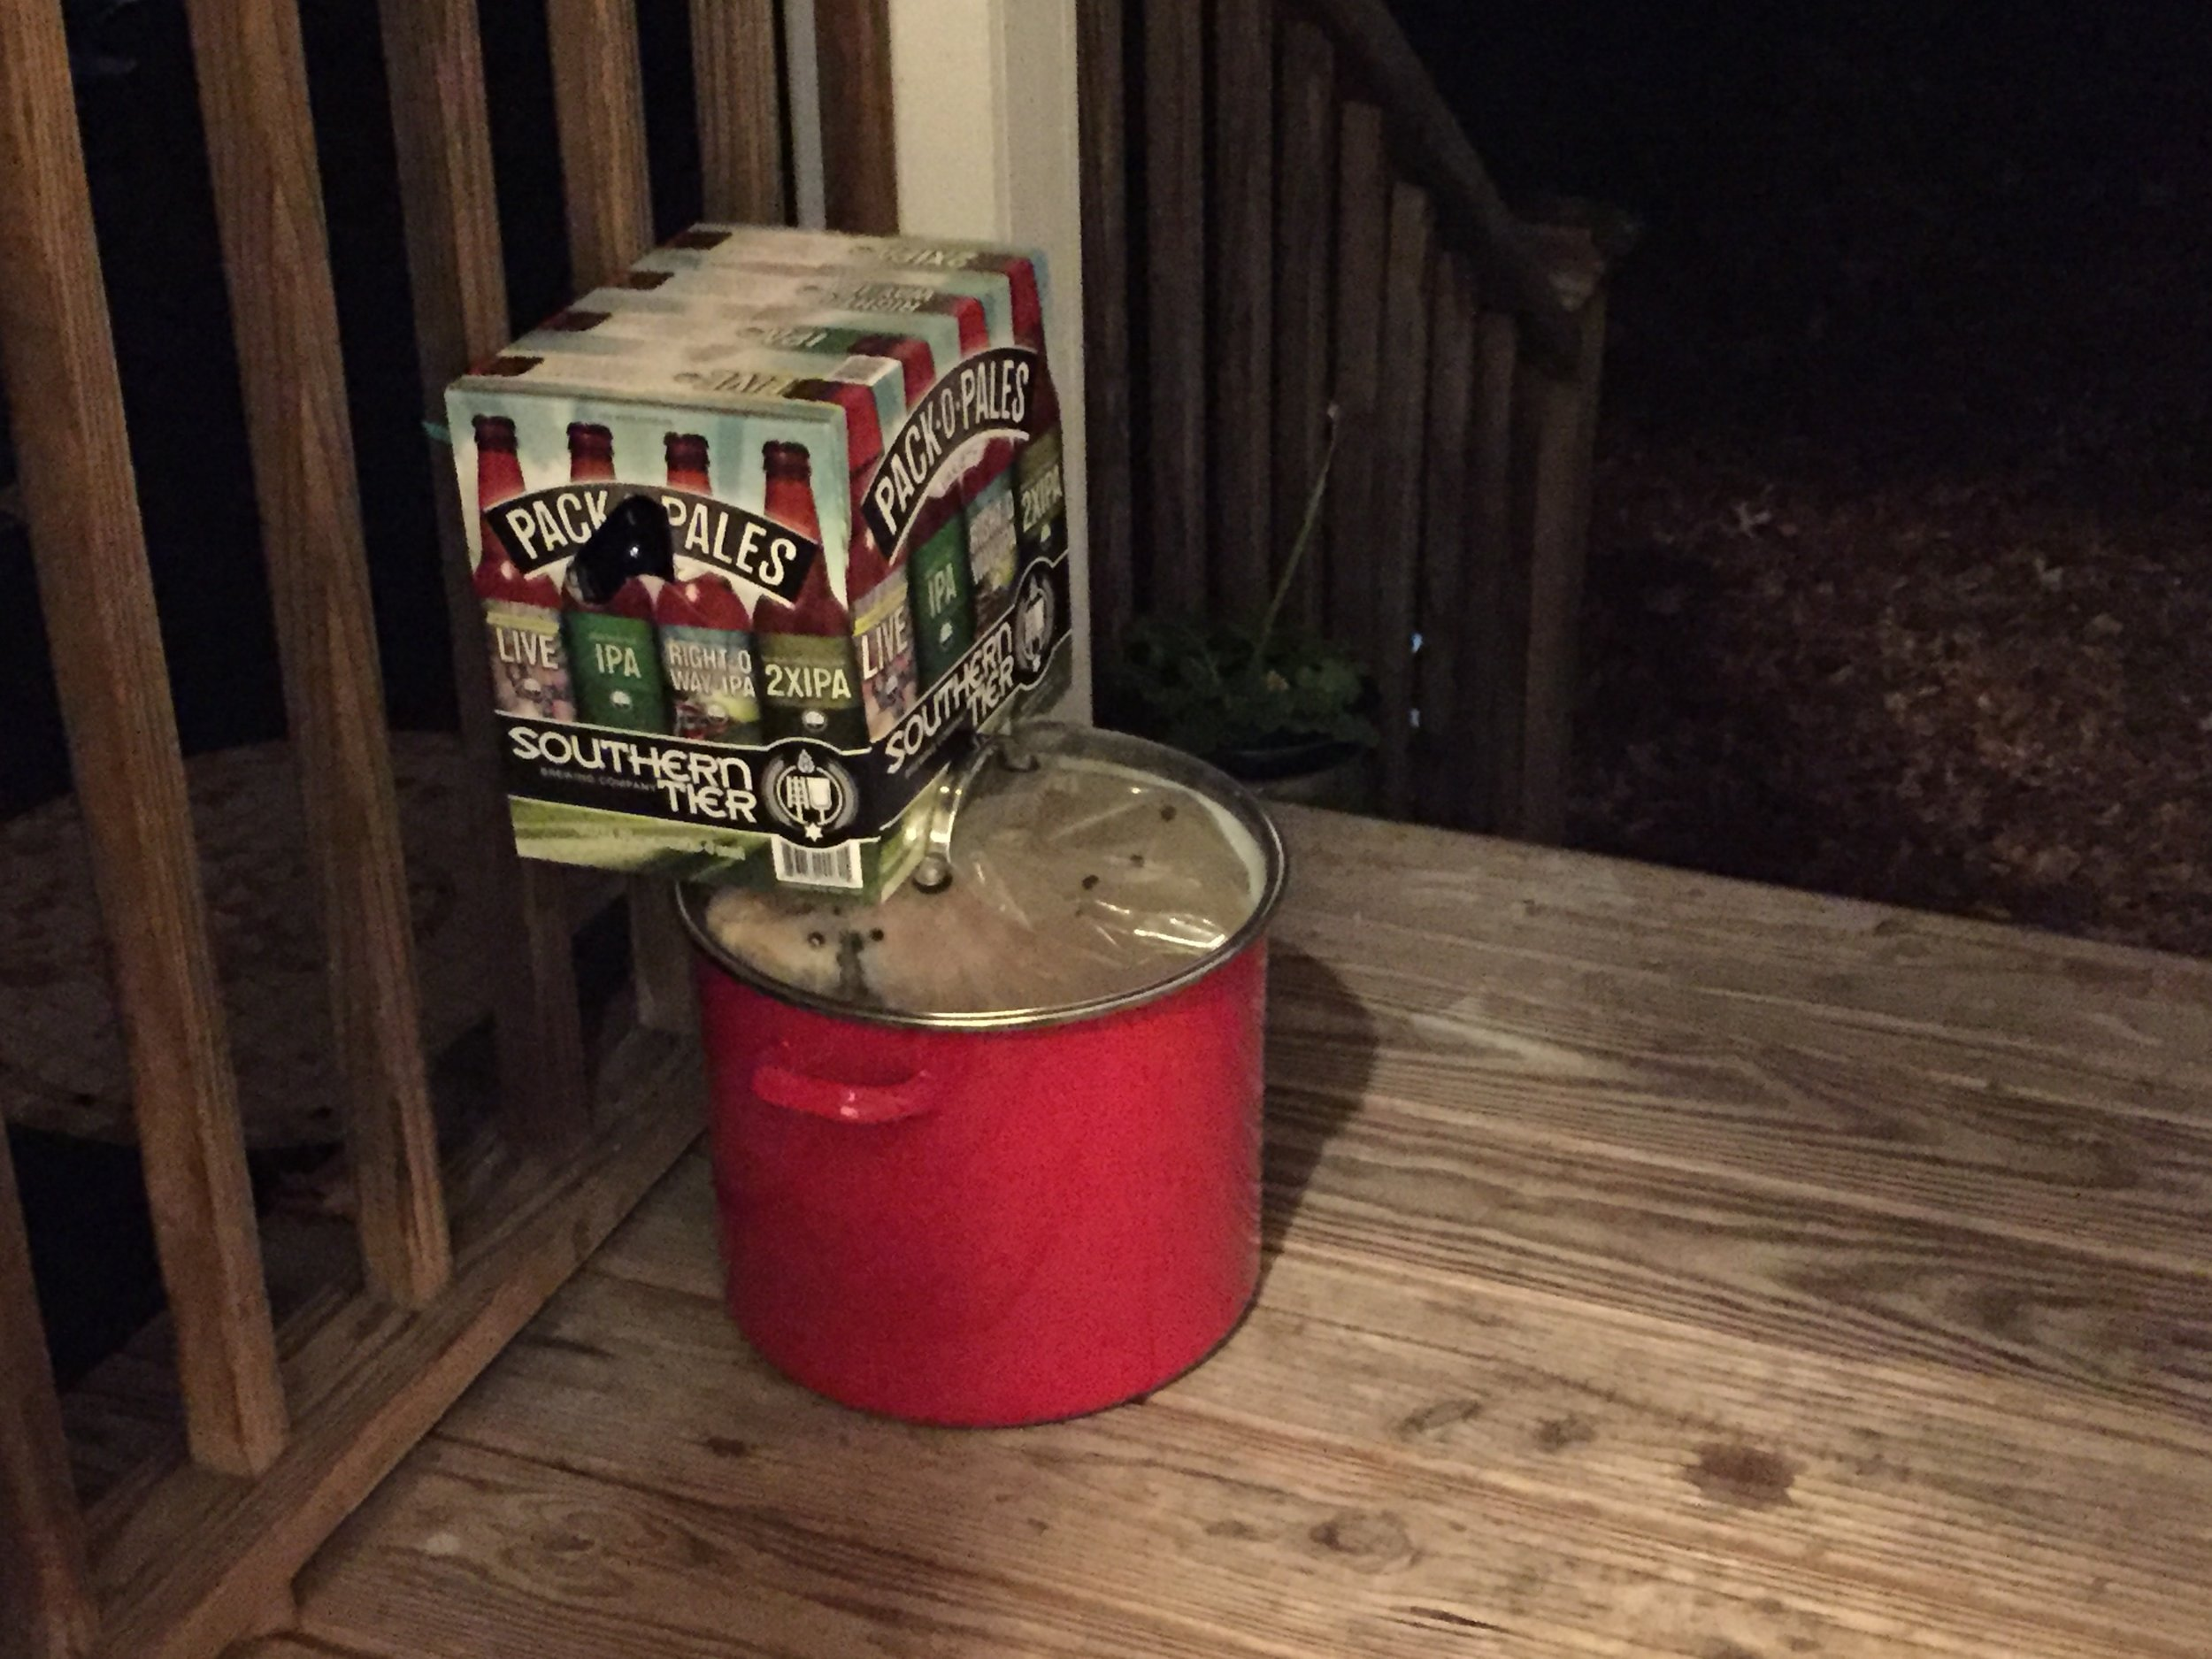 Our turkey, brining away in cold temperatures on the back porch. Lid secured with a case of beer, which is itself being kept cold until needed for football viewing the following day.